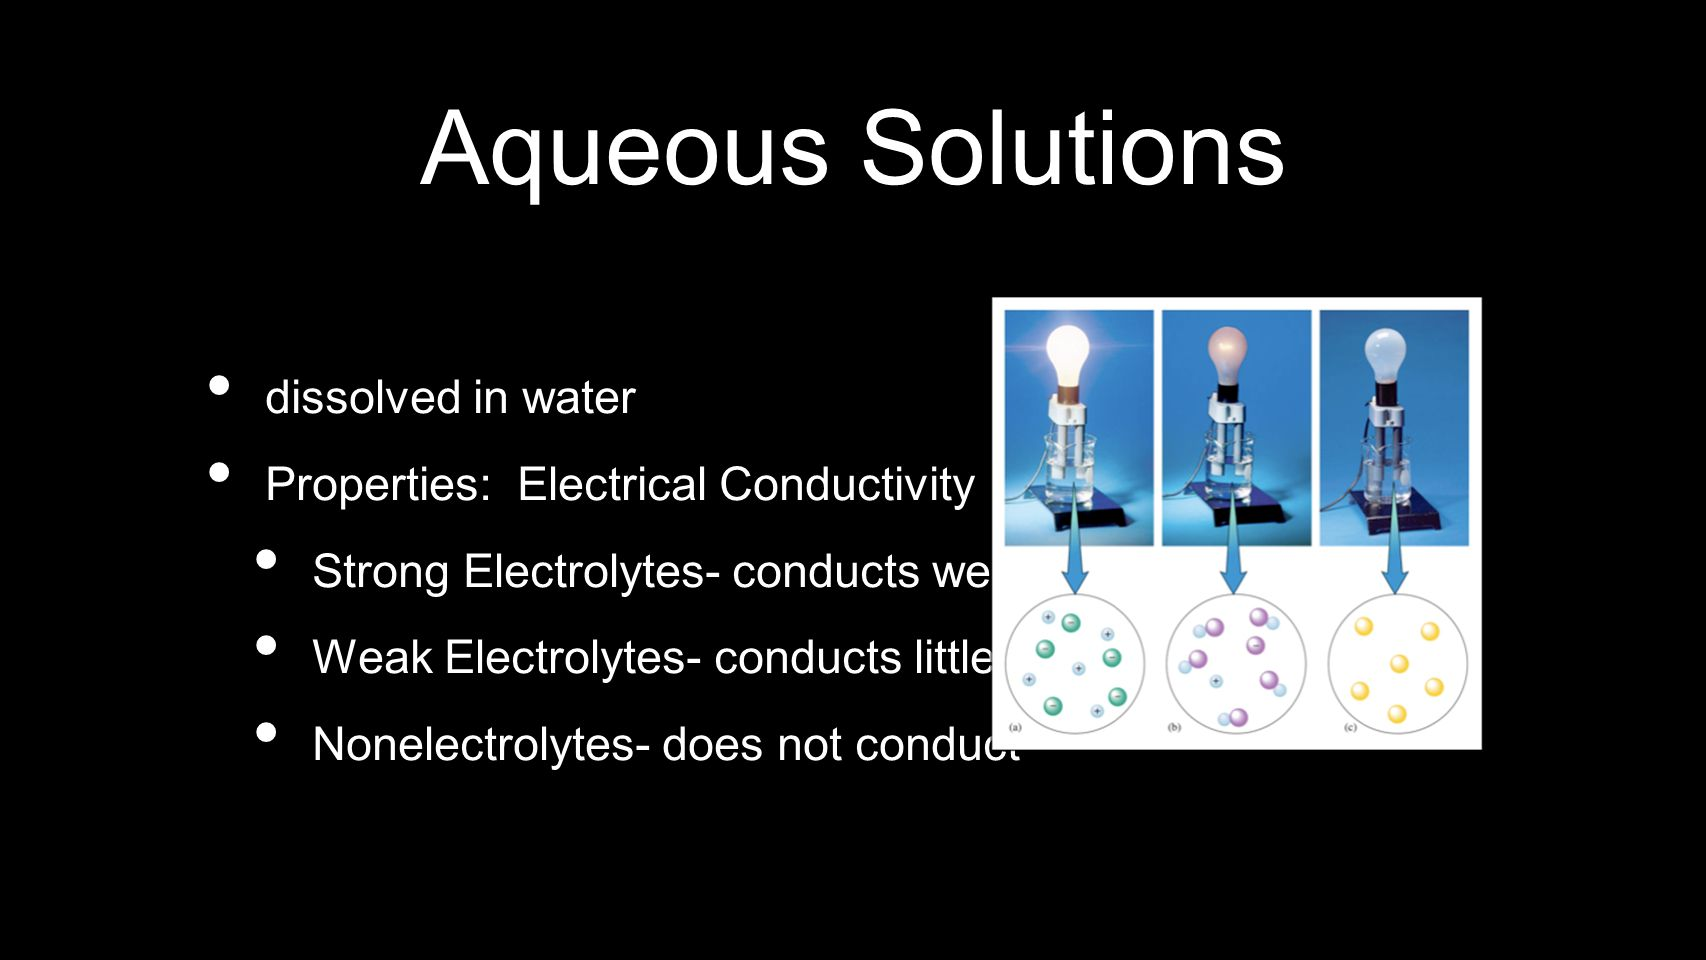 Aqueous Solutions dissolved in water